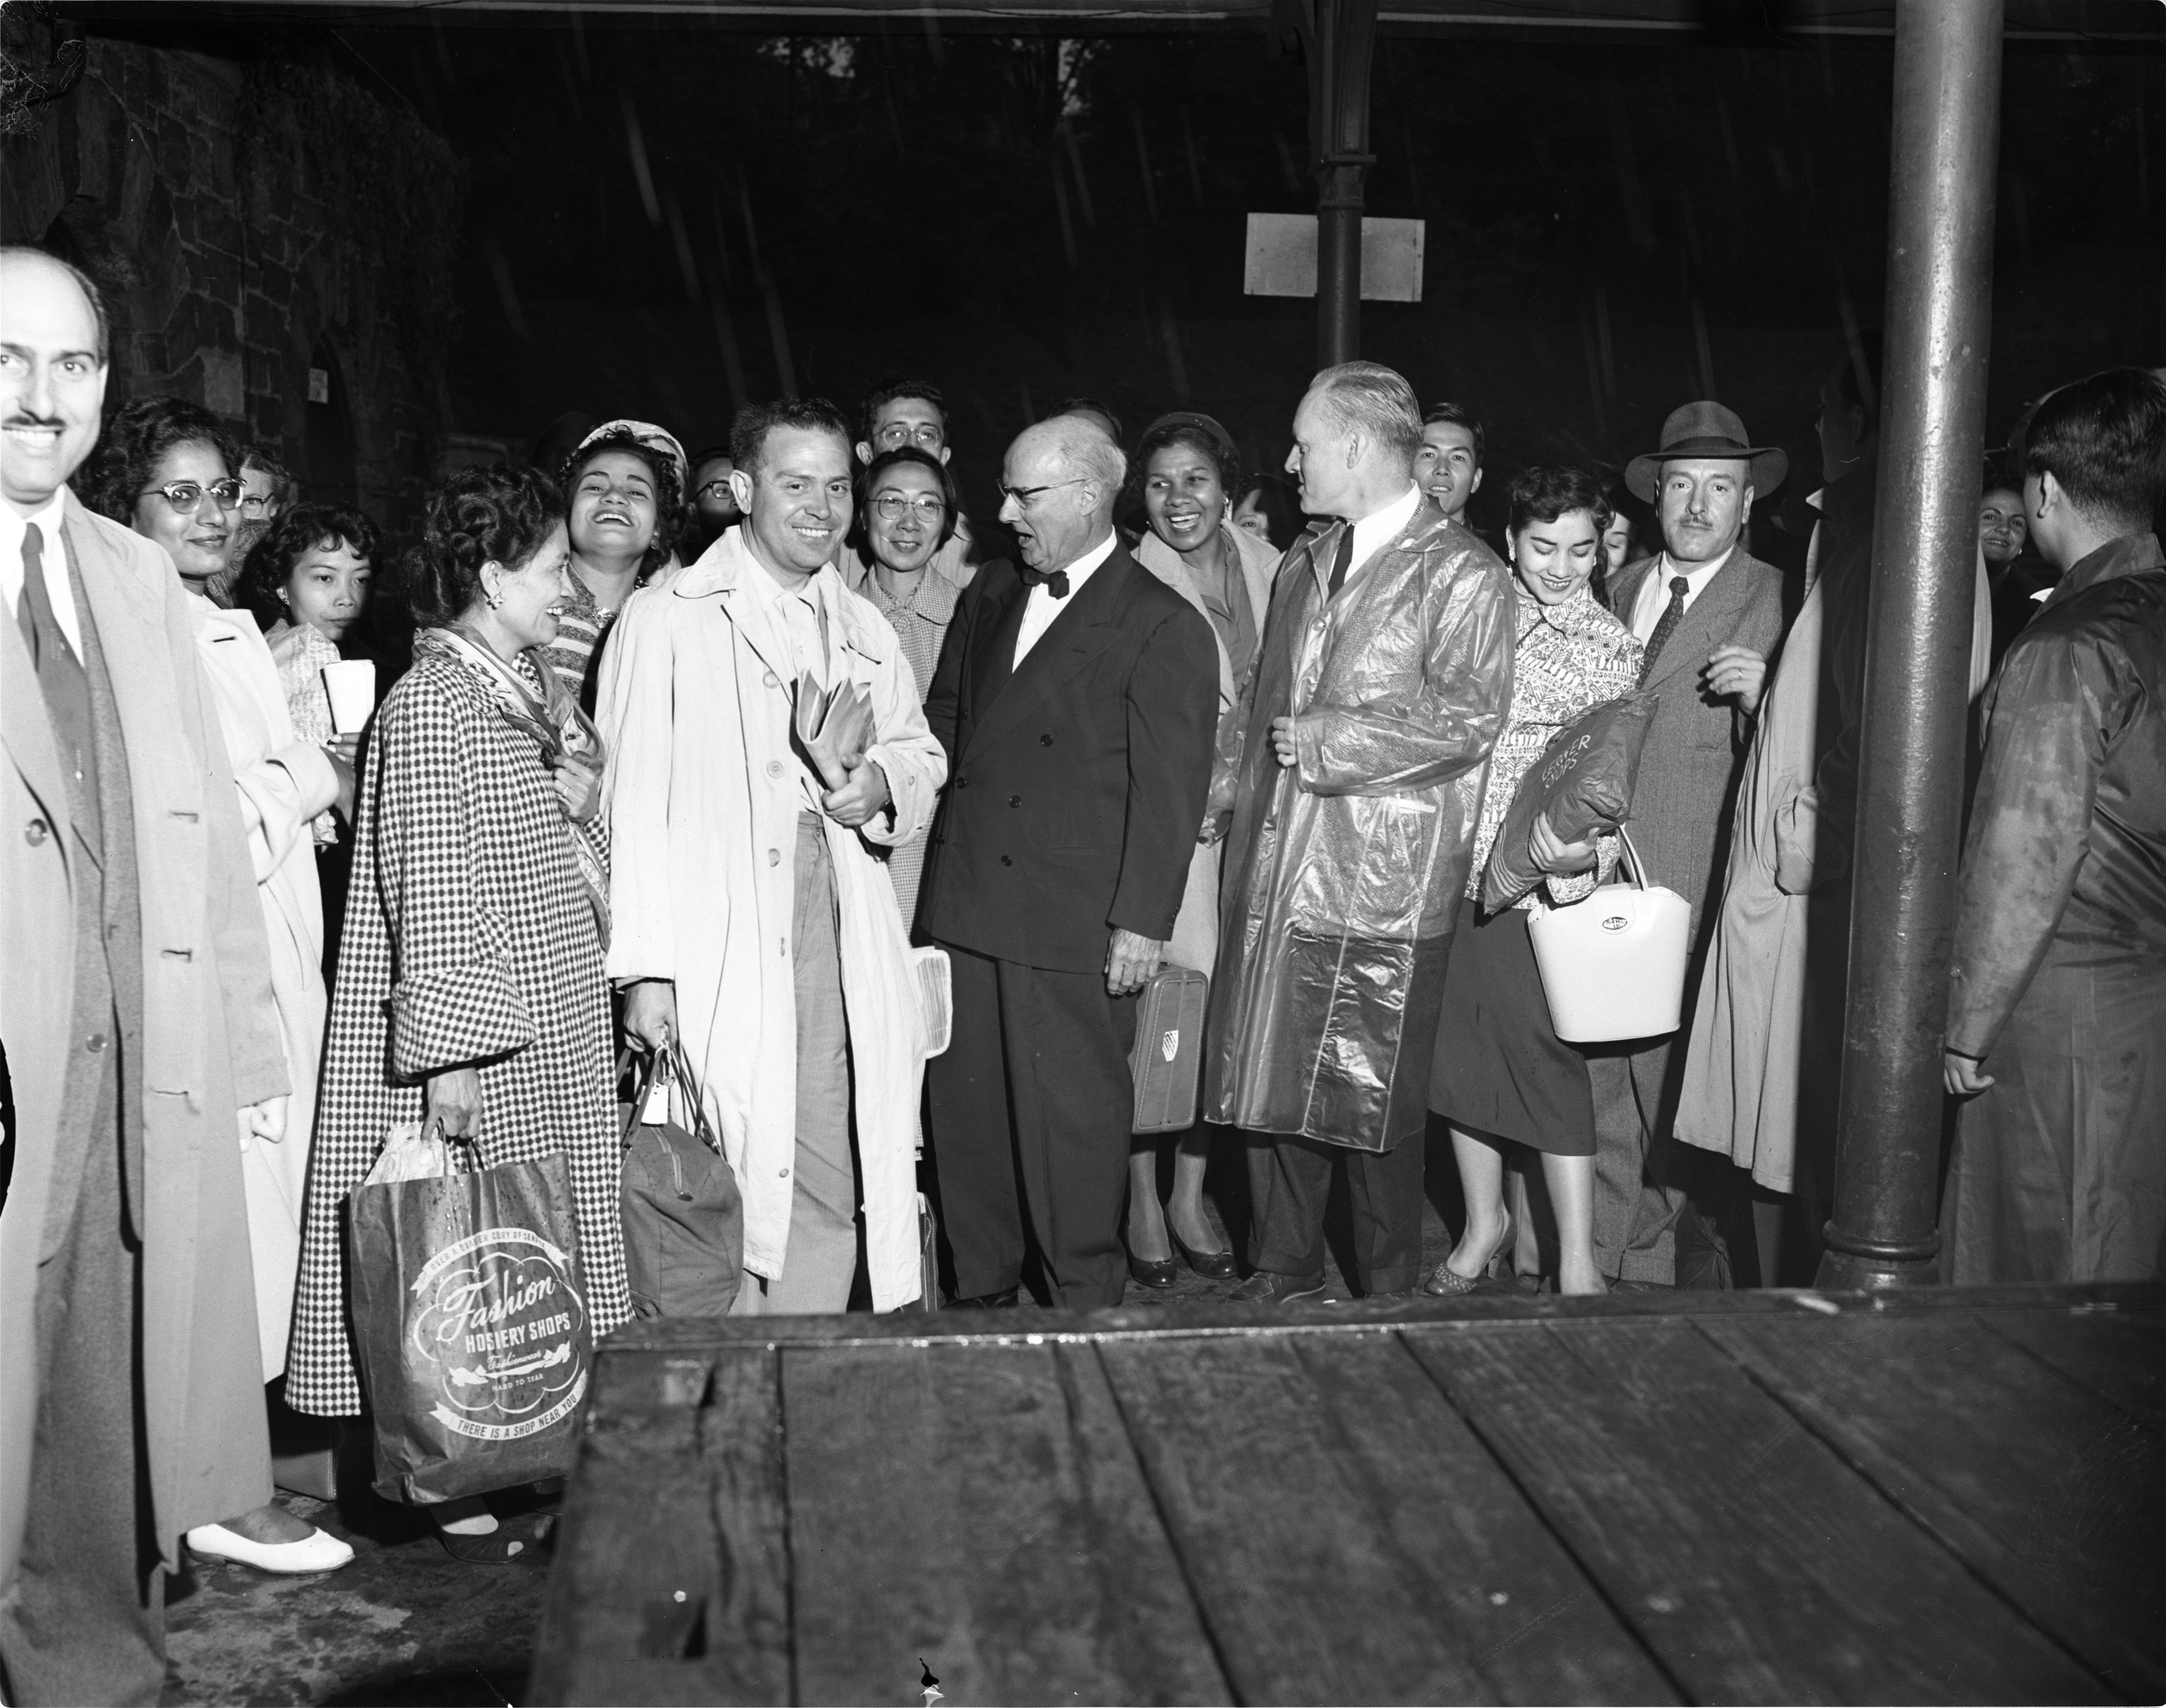 Teachers Of English Arrive From Different Countries At UM's English Language Institute To Study, September 23, 1955 image